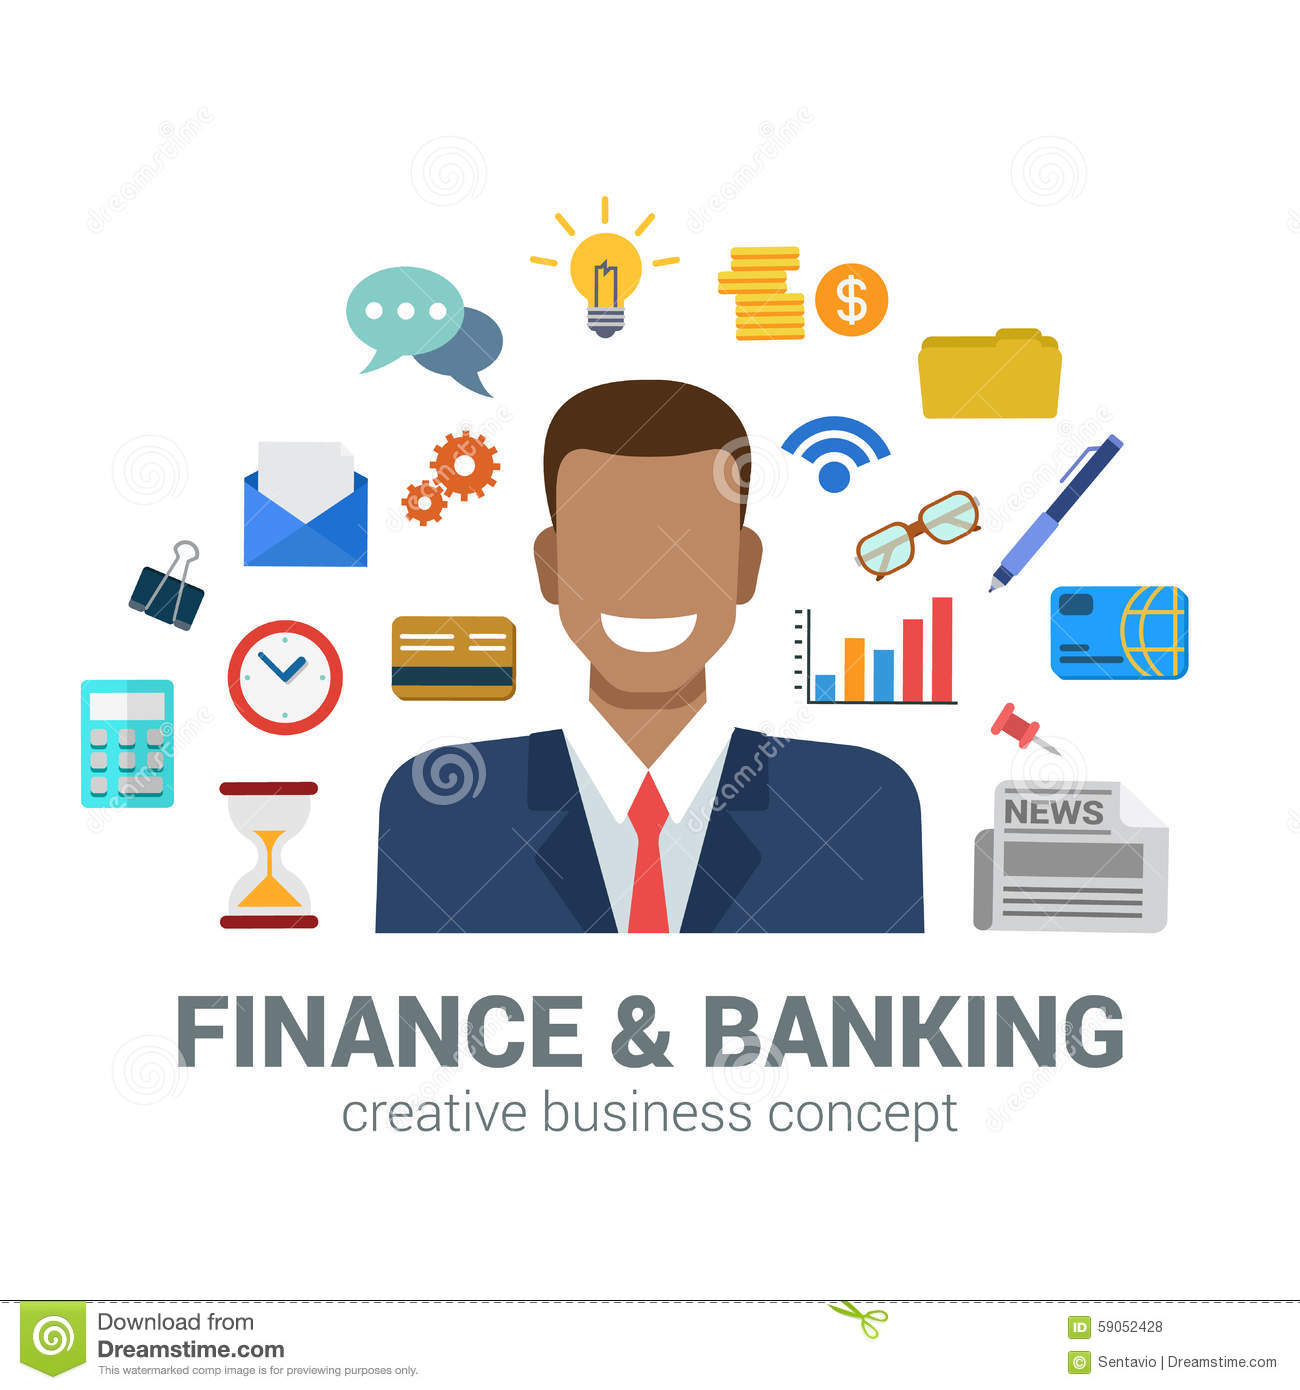 banking finance Comerica offers a wide range of personal banking and financial services, including checking and savings accounts, web and mobile banking, and credit cards.